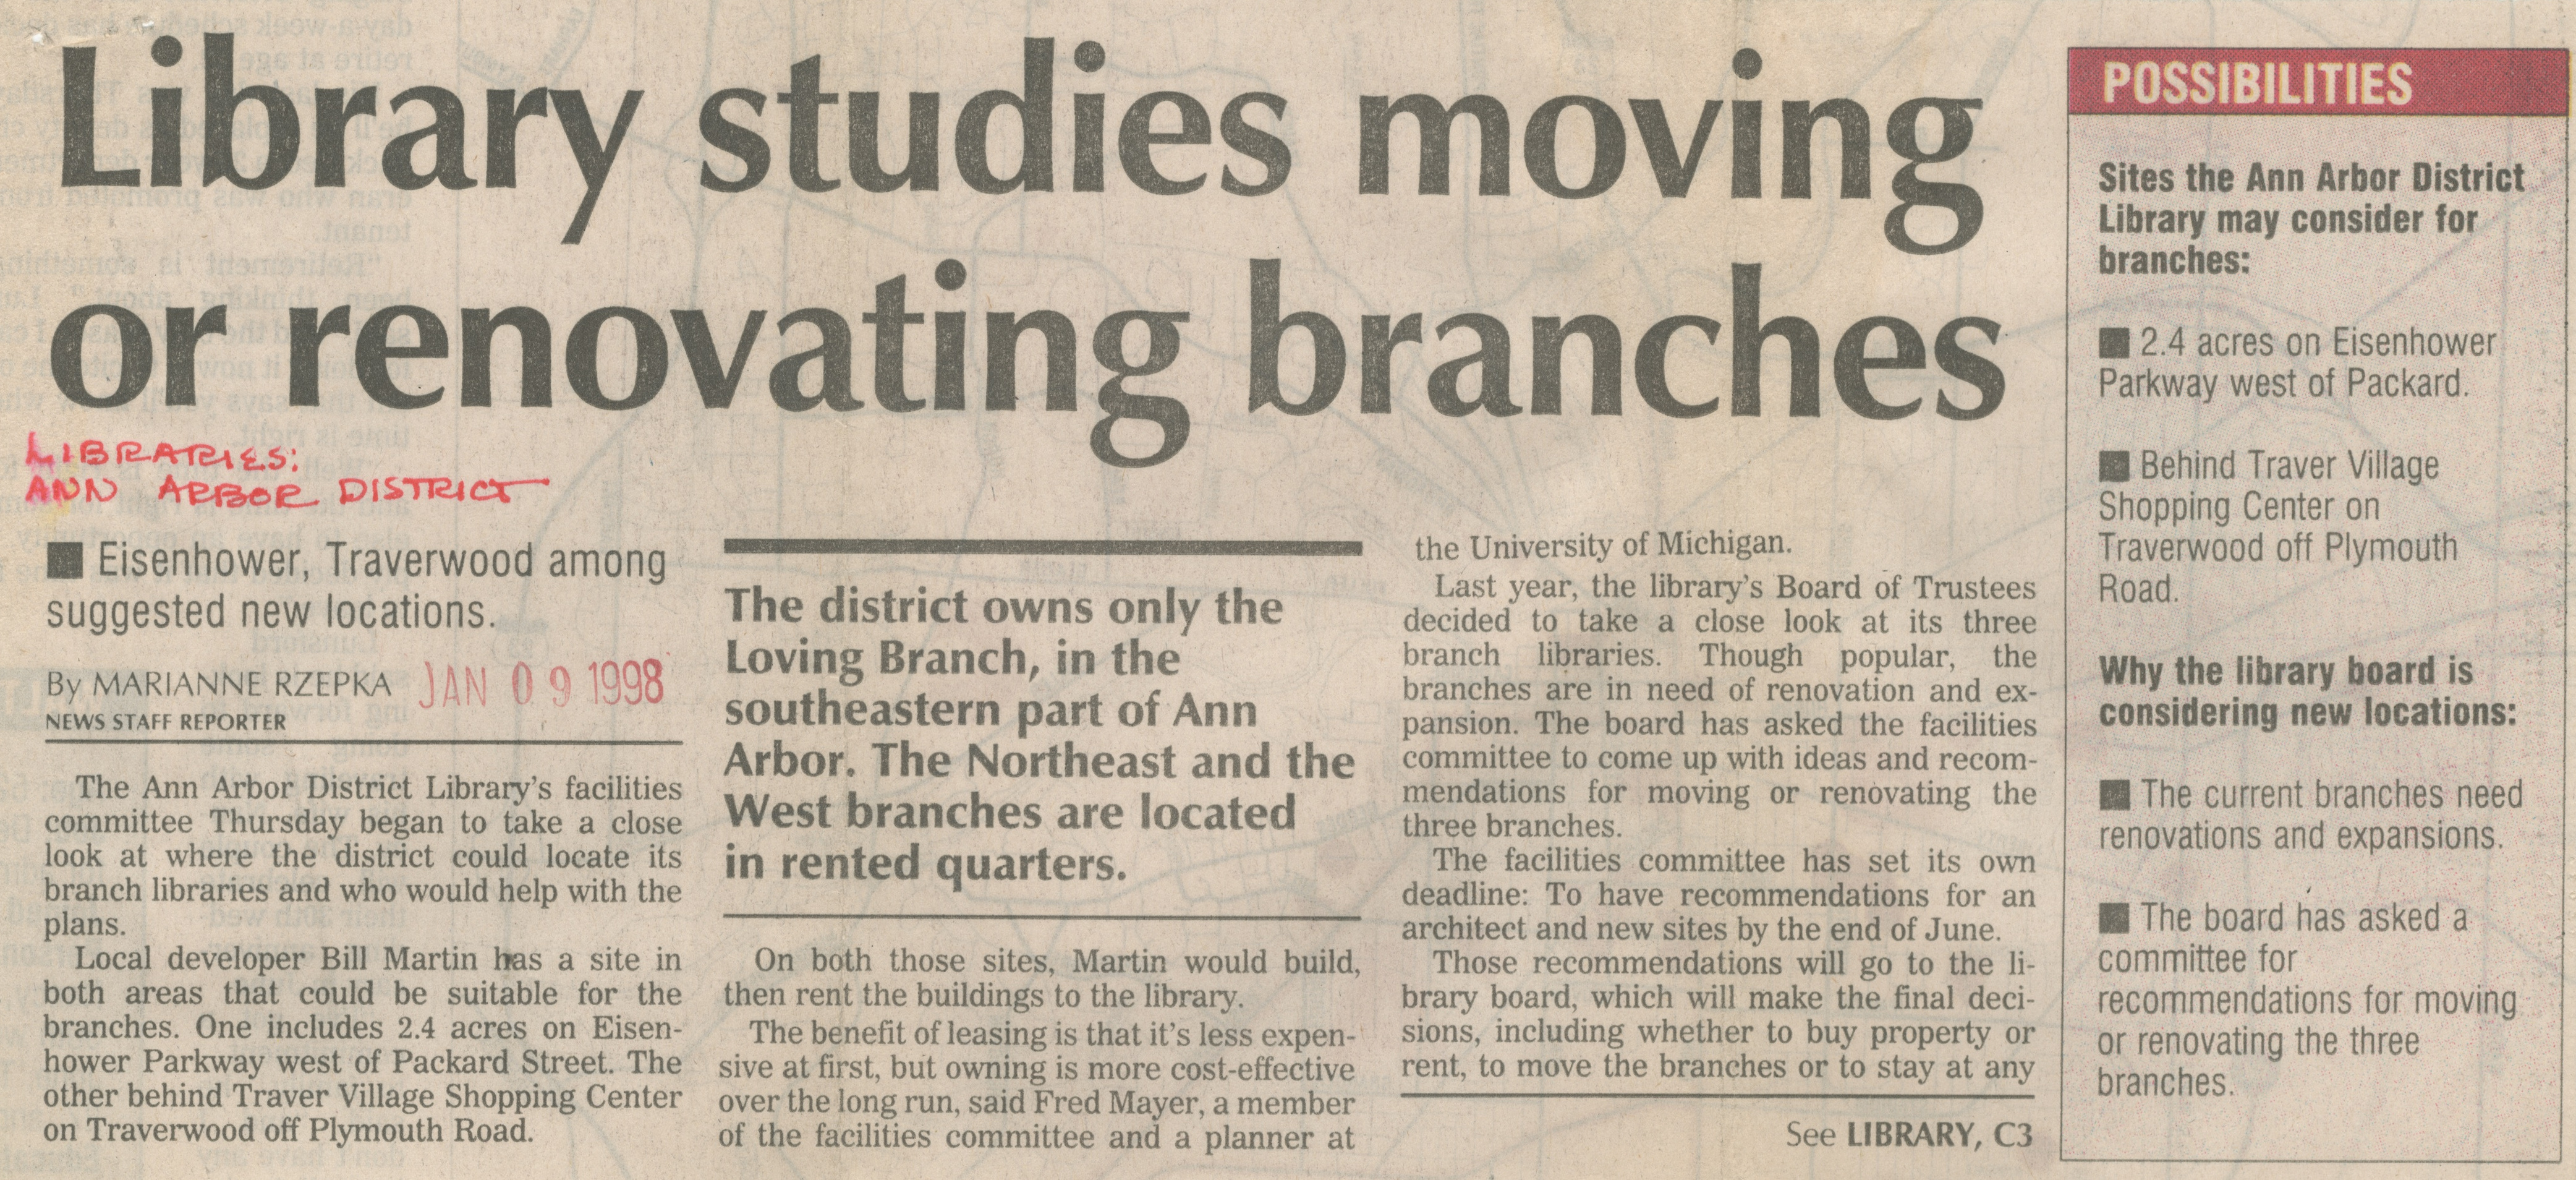 Library Studies Moving Or Renovating Branches image